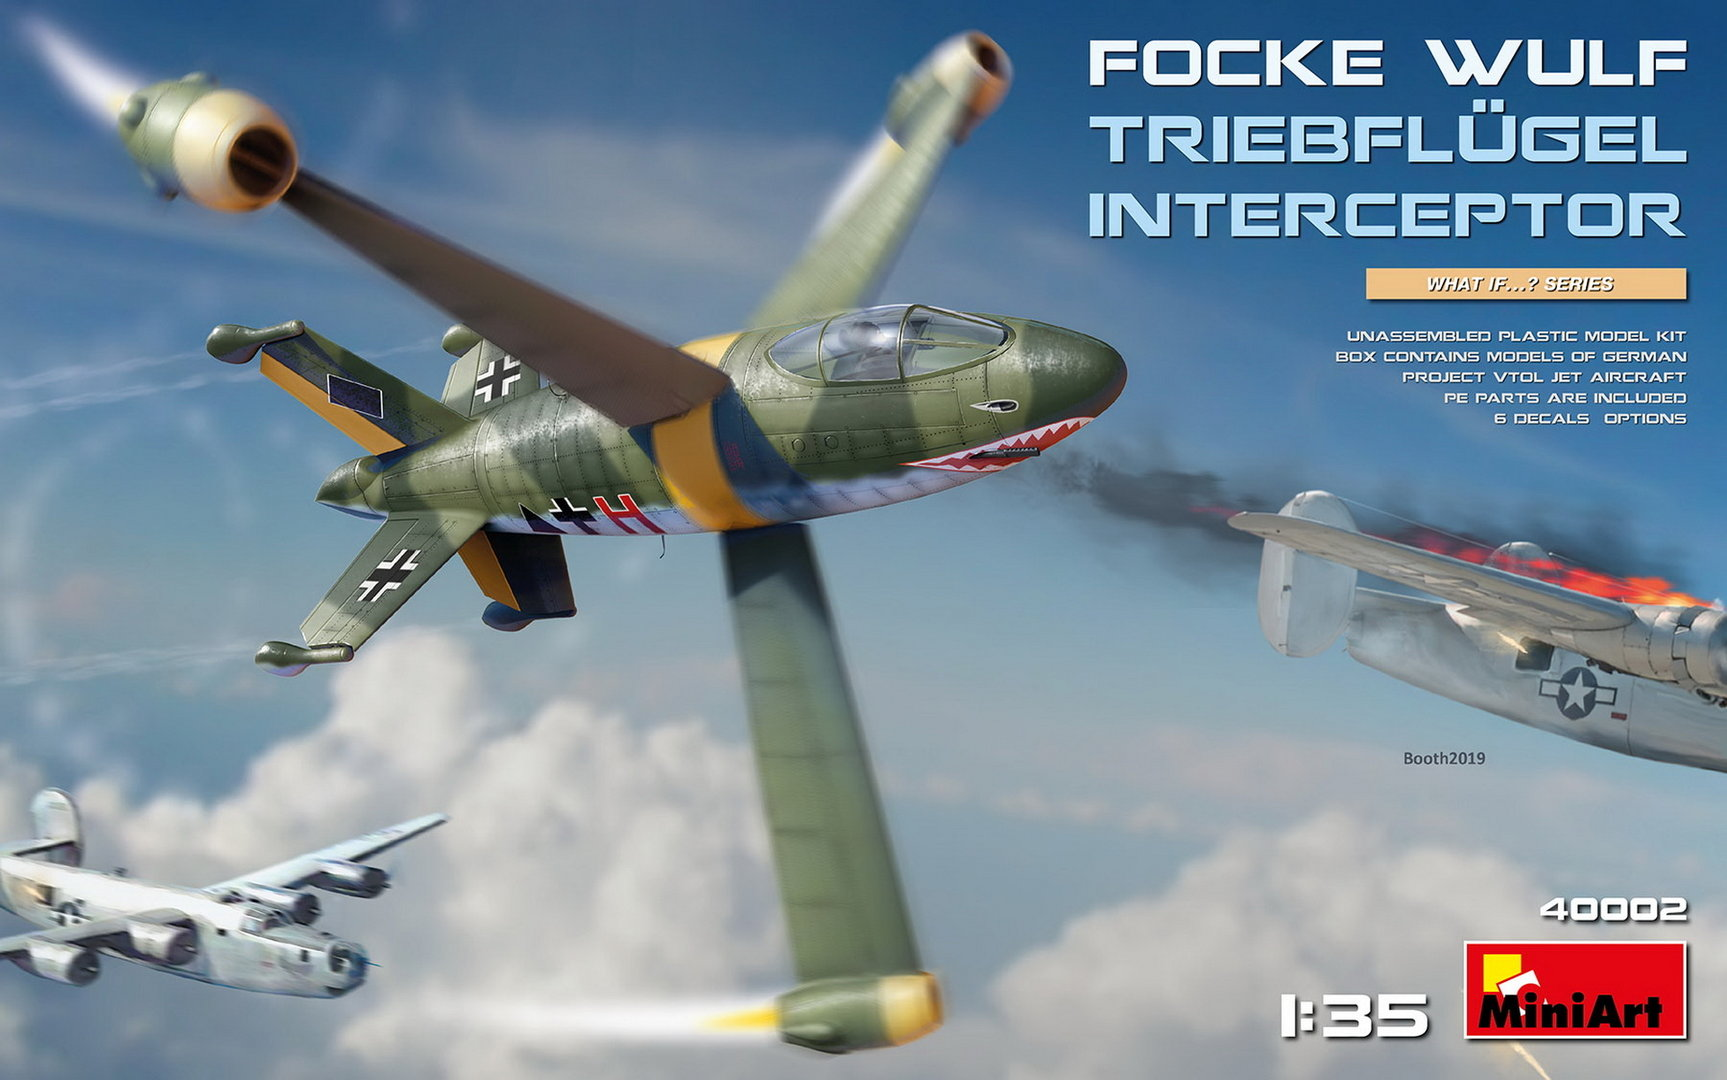 Focke Wulf Triebflügel, German Interceptor Project, 1/35 Plastic Kit